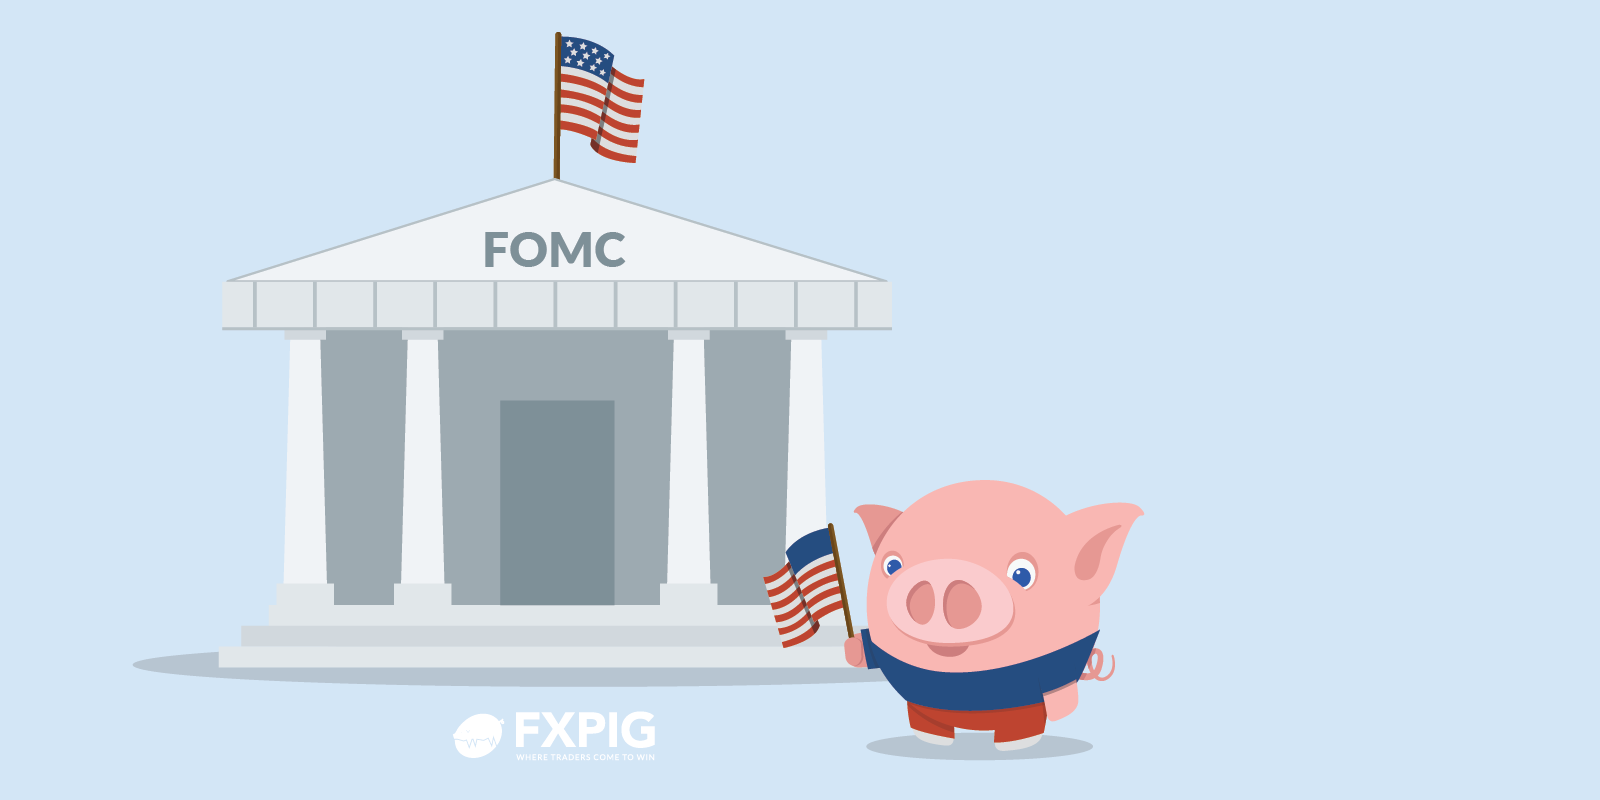 FOREX_Market-events-ahead_FOREX_FXPIG